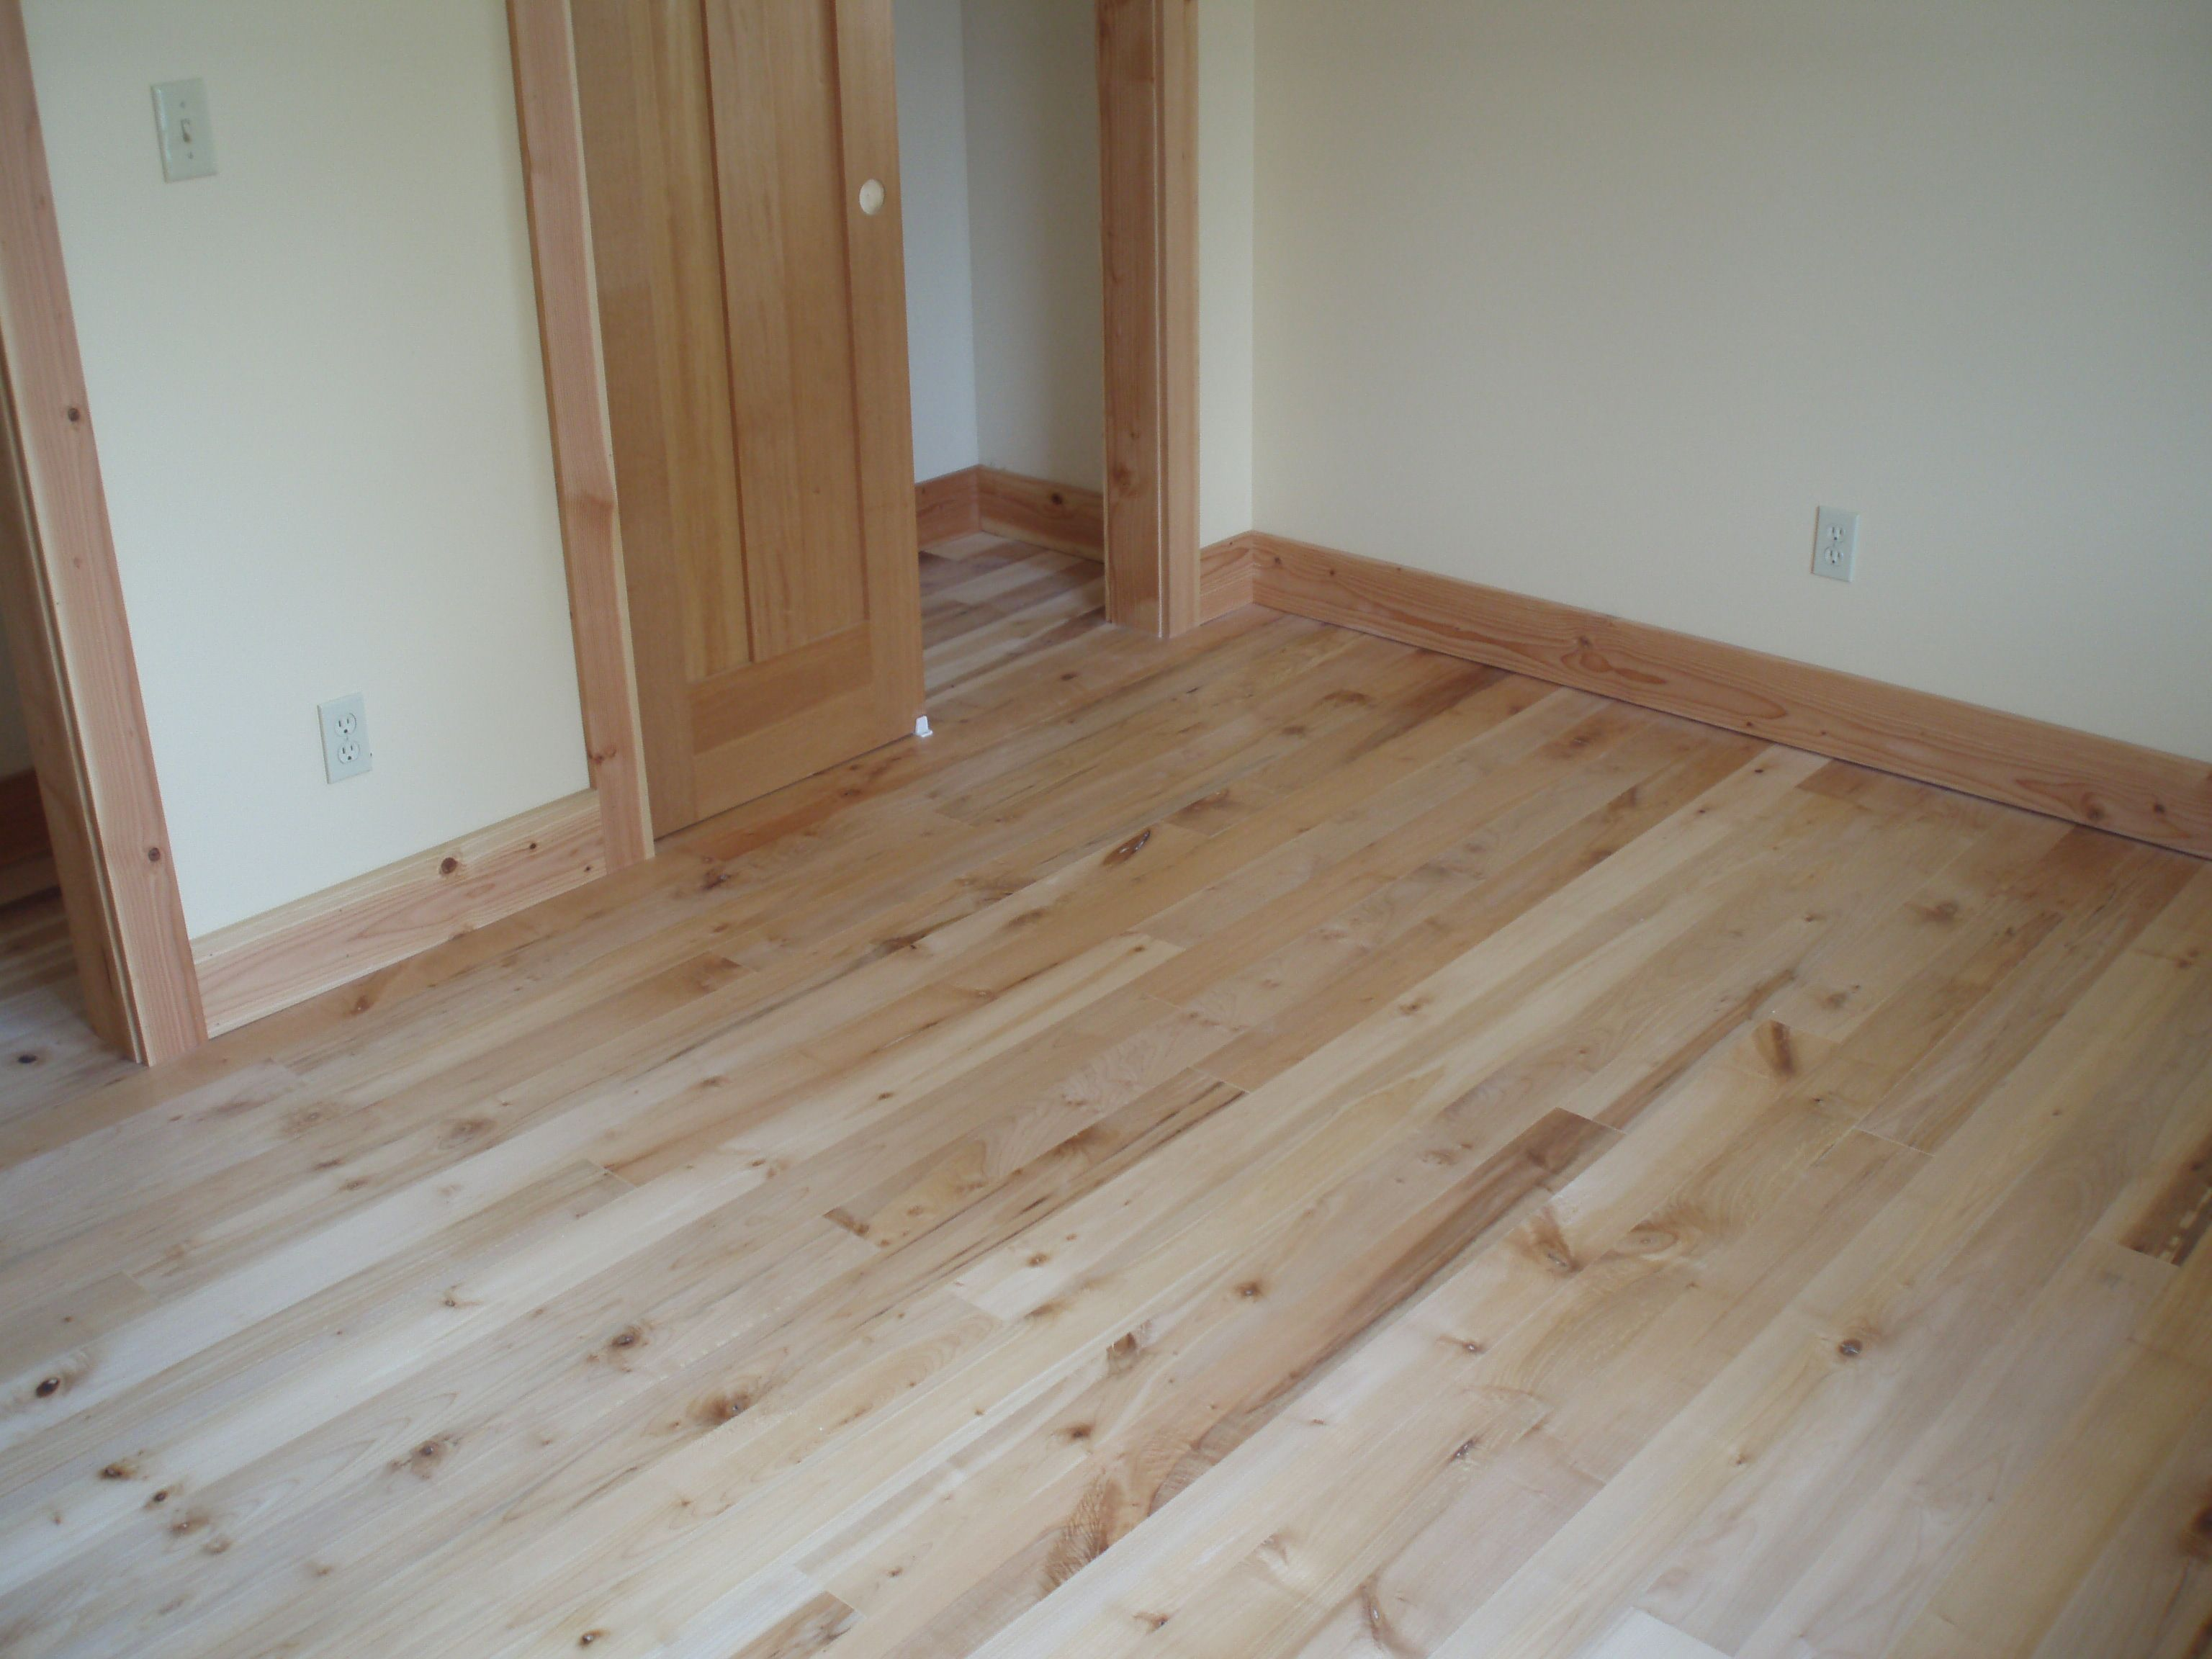 Character Grade Oregon Leaf Maple Flooring With Osmo Polyx Oil Finish Notice The Baseboards Match Floor Domino Hardwood Floors Inc